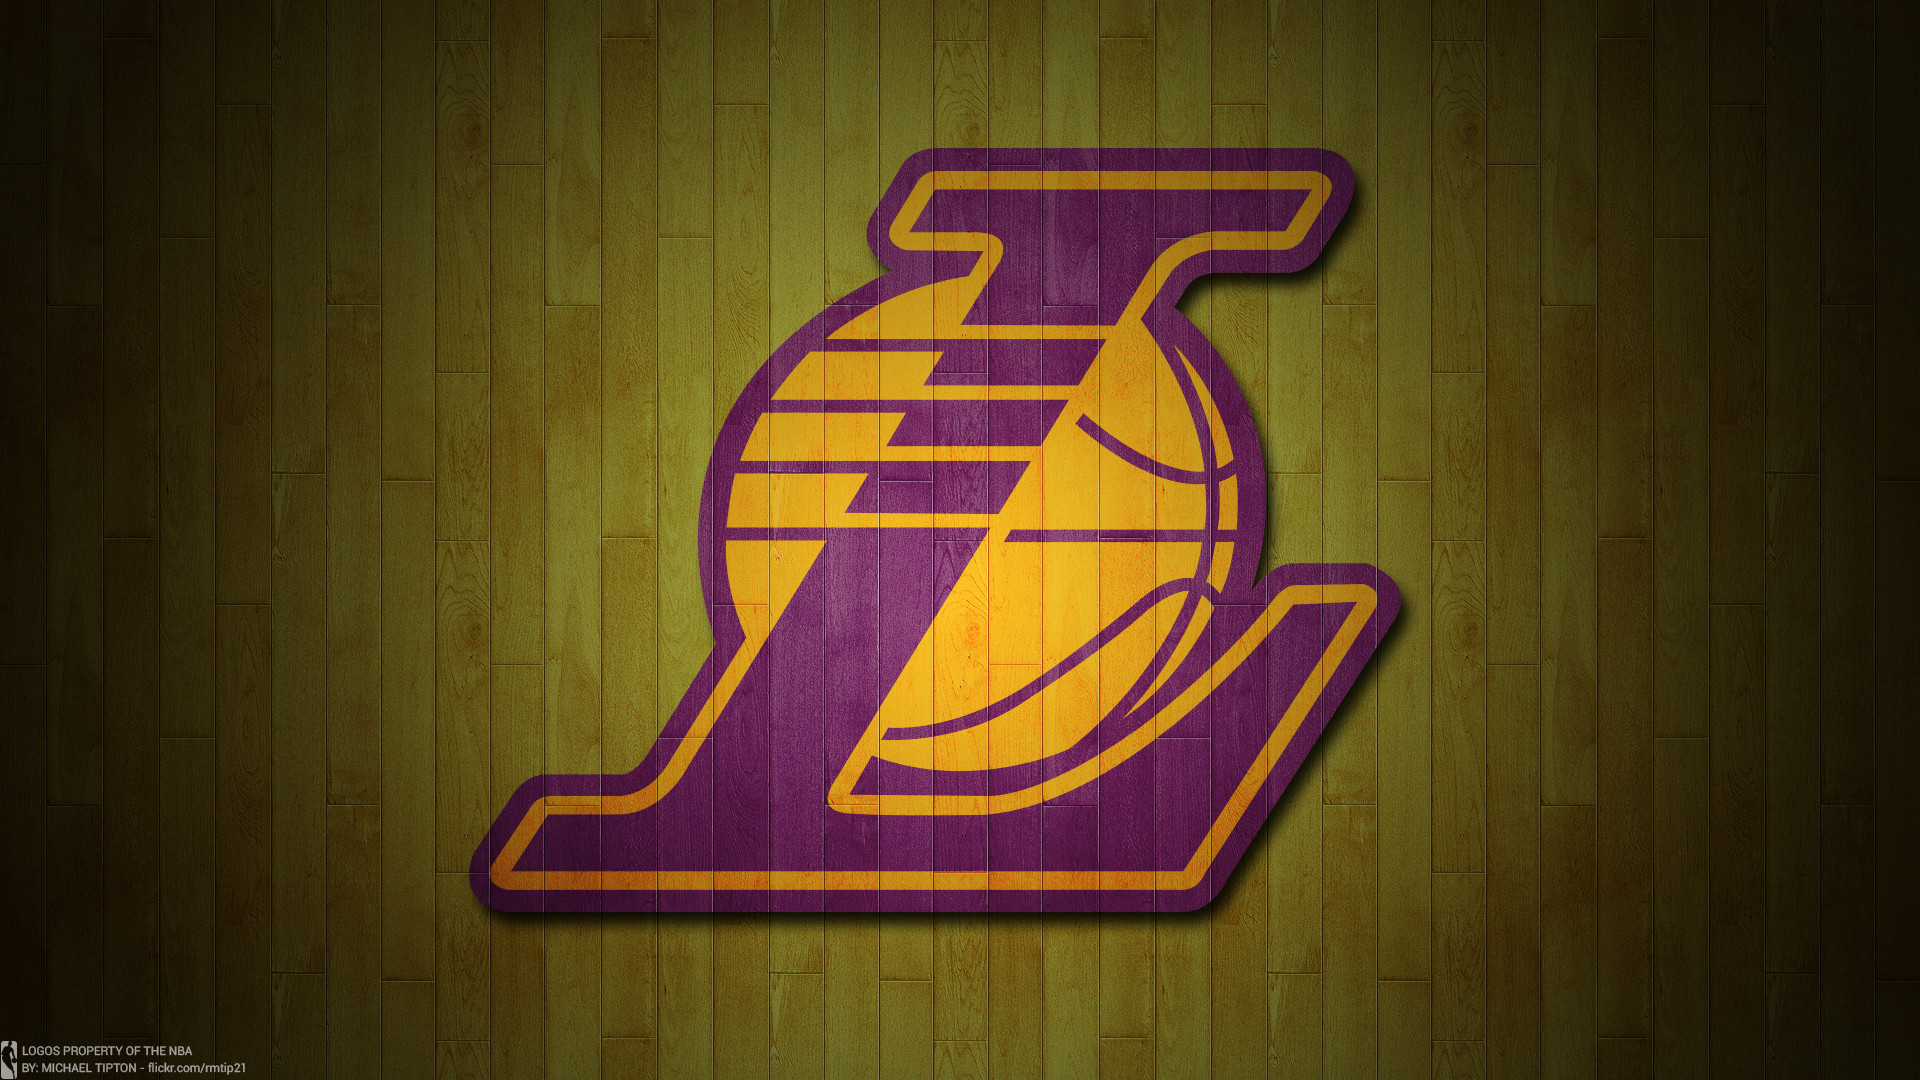 Laker wallpapers 75 images 1920x1080 shaq and kobe lakers wallpaper by skythlee on deviantart lakers wallpaper wallpapers voltagebd Choice Image